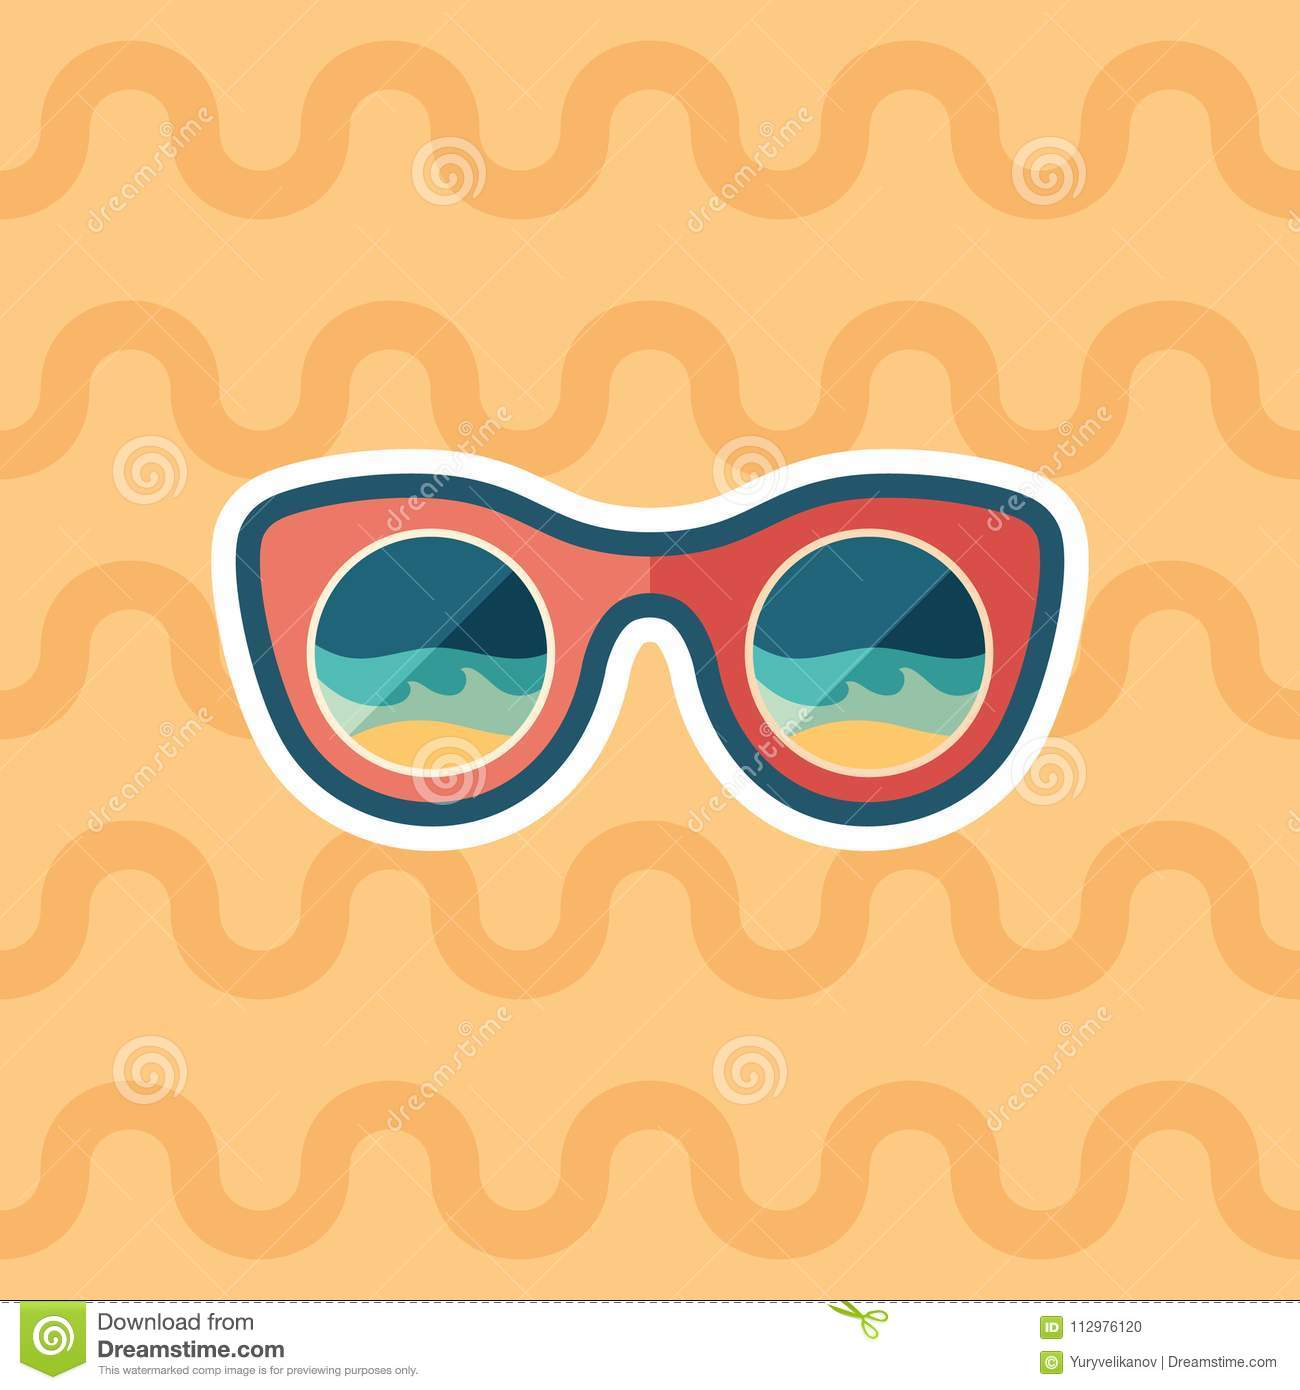 Sunglasses beach reflection sticker flat icon with color background.